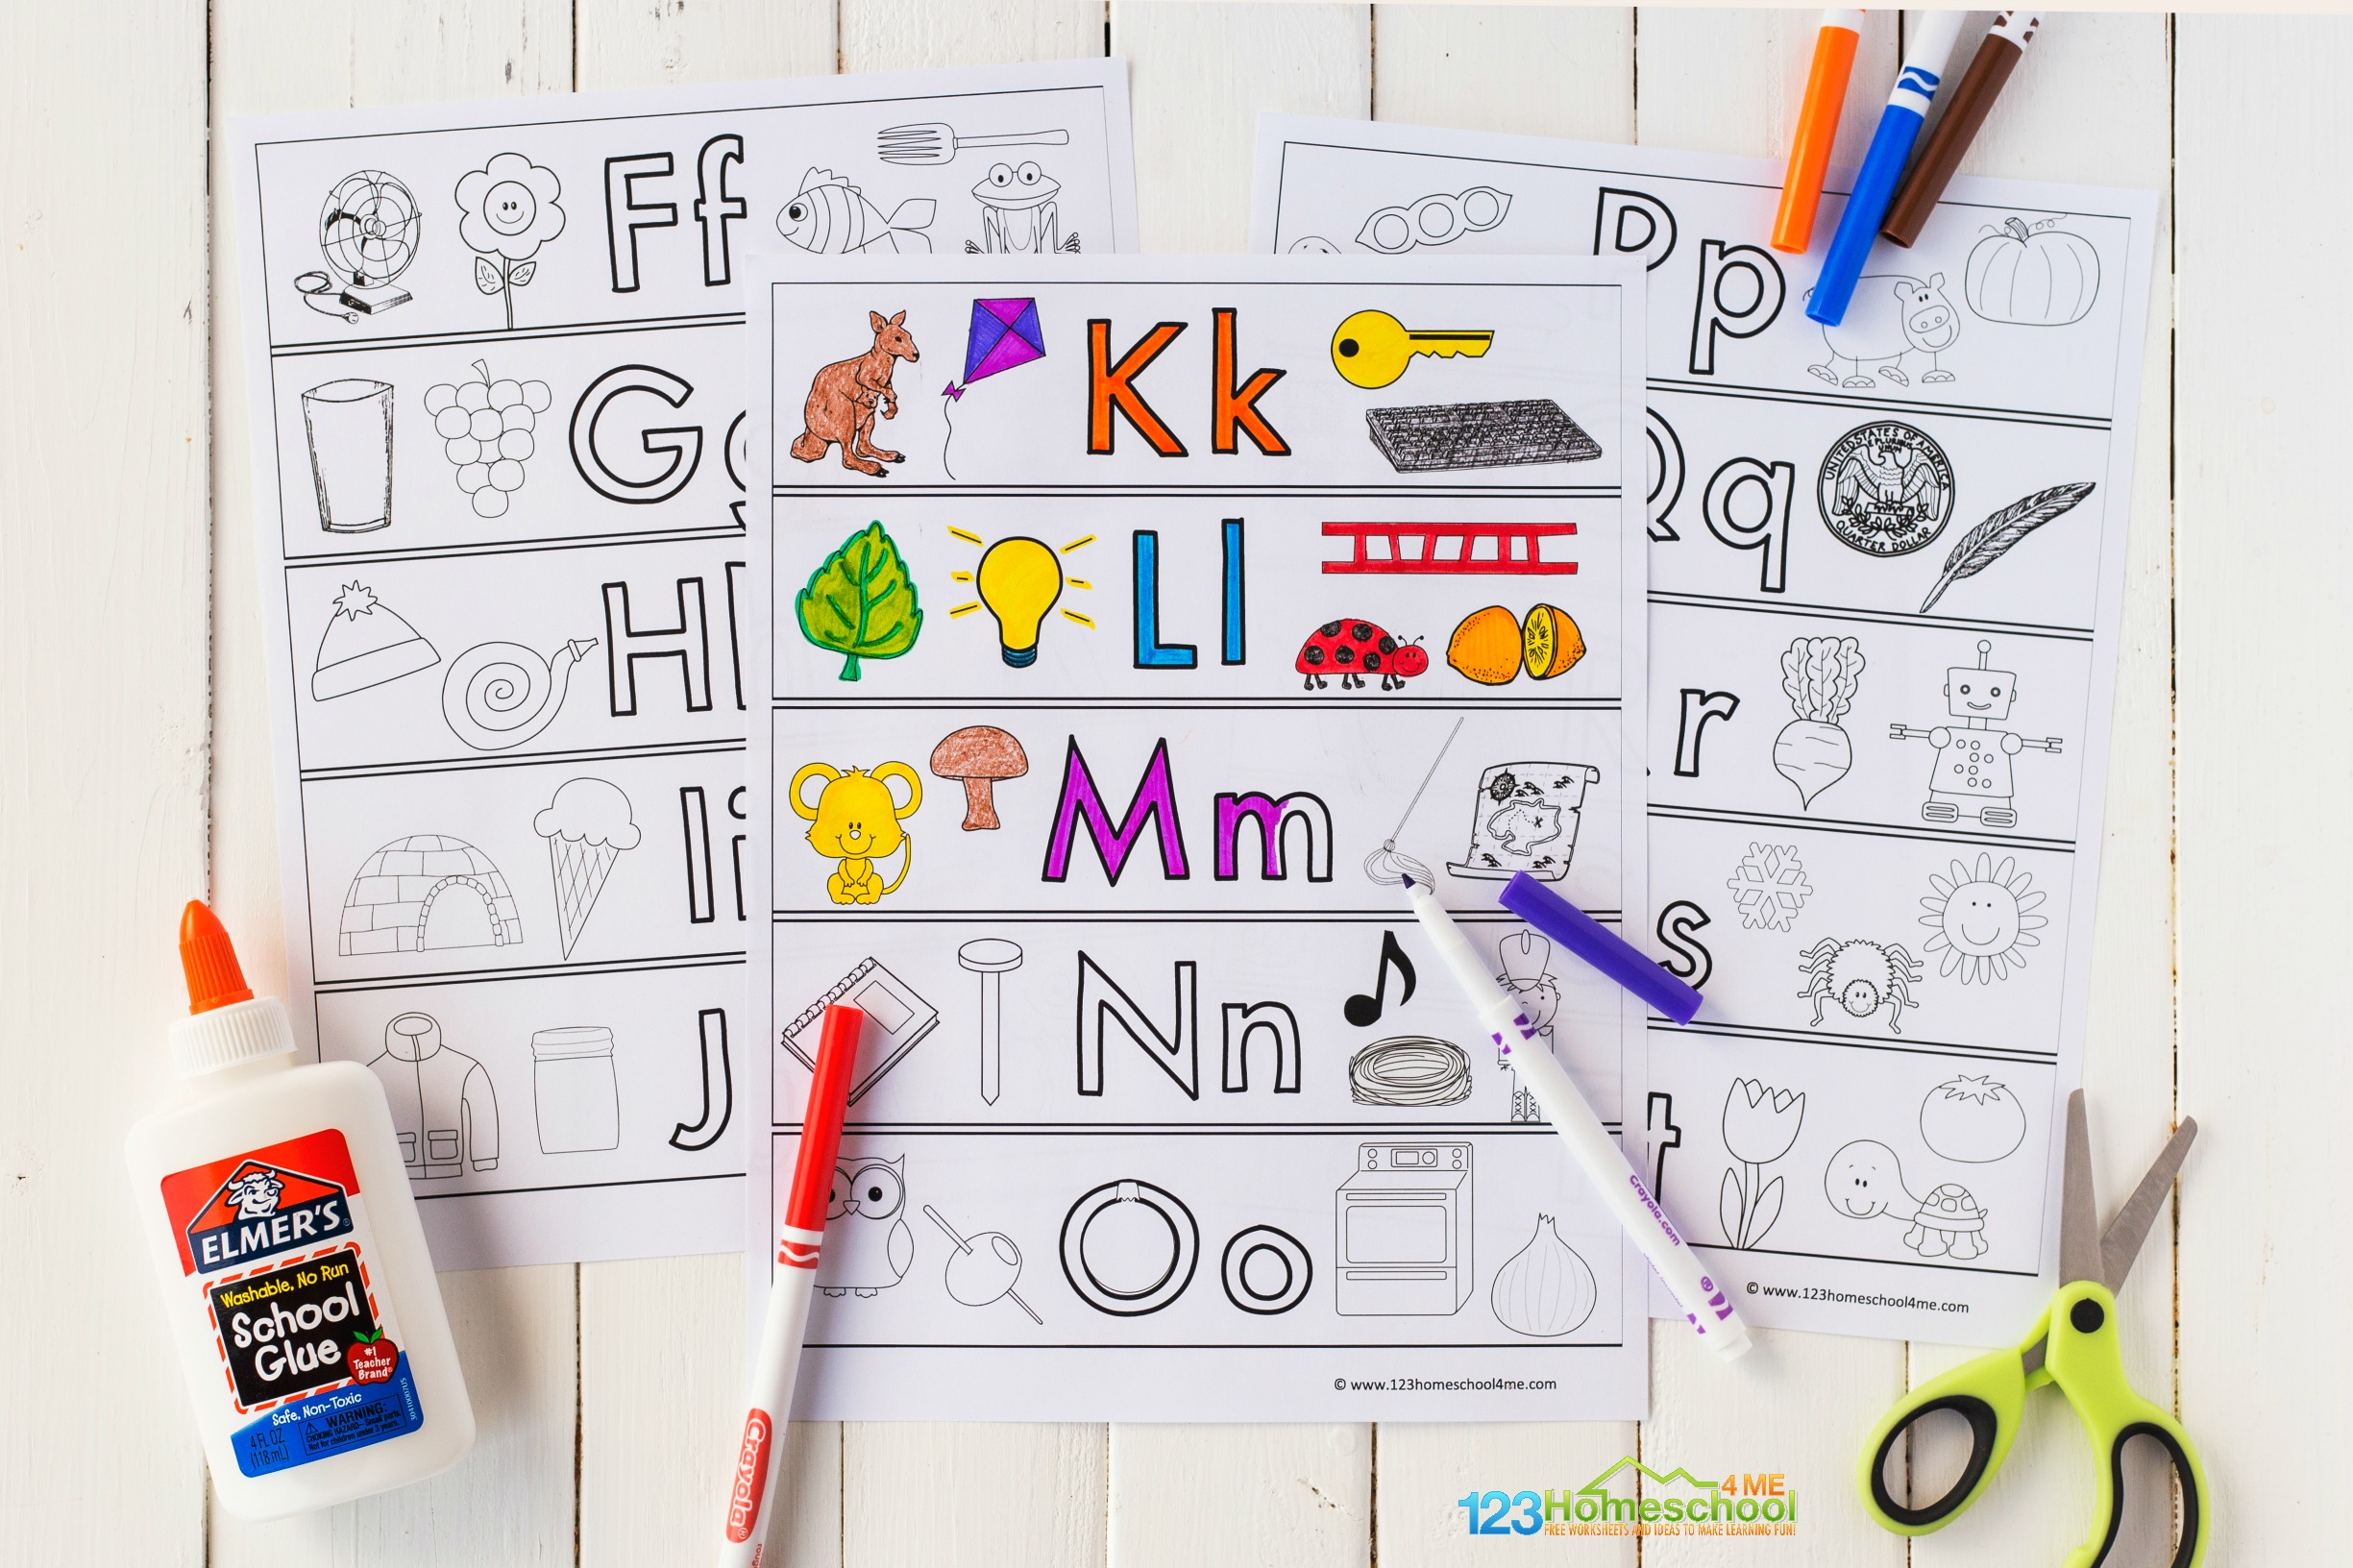 free abc printables to learn upper and lowercase letters, beginning sounds, and phonemic awareness with letter of the day or letter of the week with preschool, pre-k, and kindergarten age students